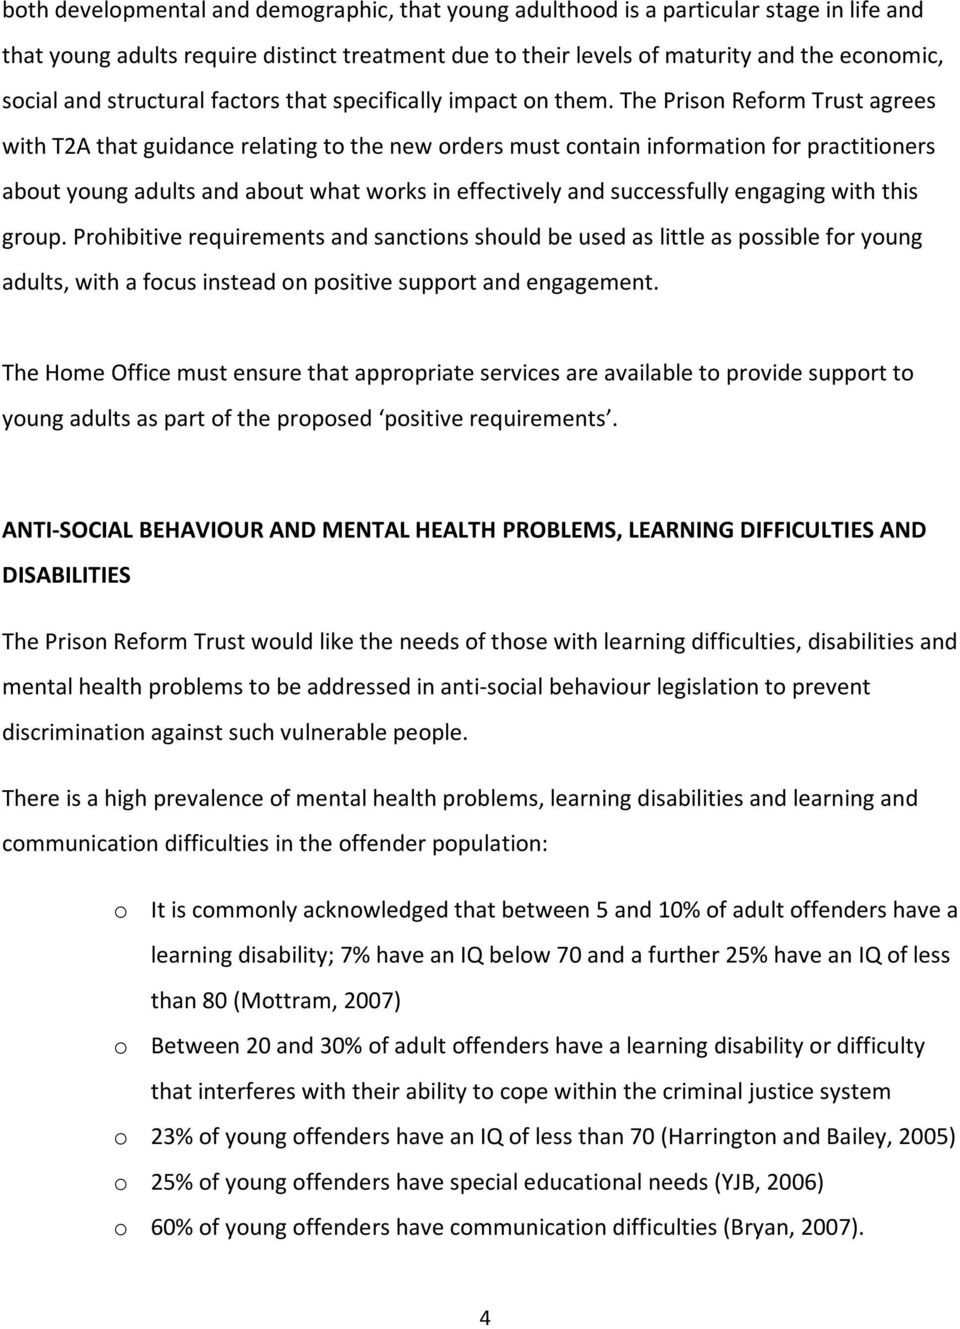 The Prison Reform Trust agrees with T2A that guidance relating to the new orders must contain information for practitioners about young adults and about what works in effectively and successfully